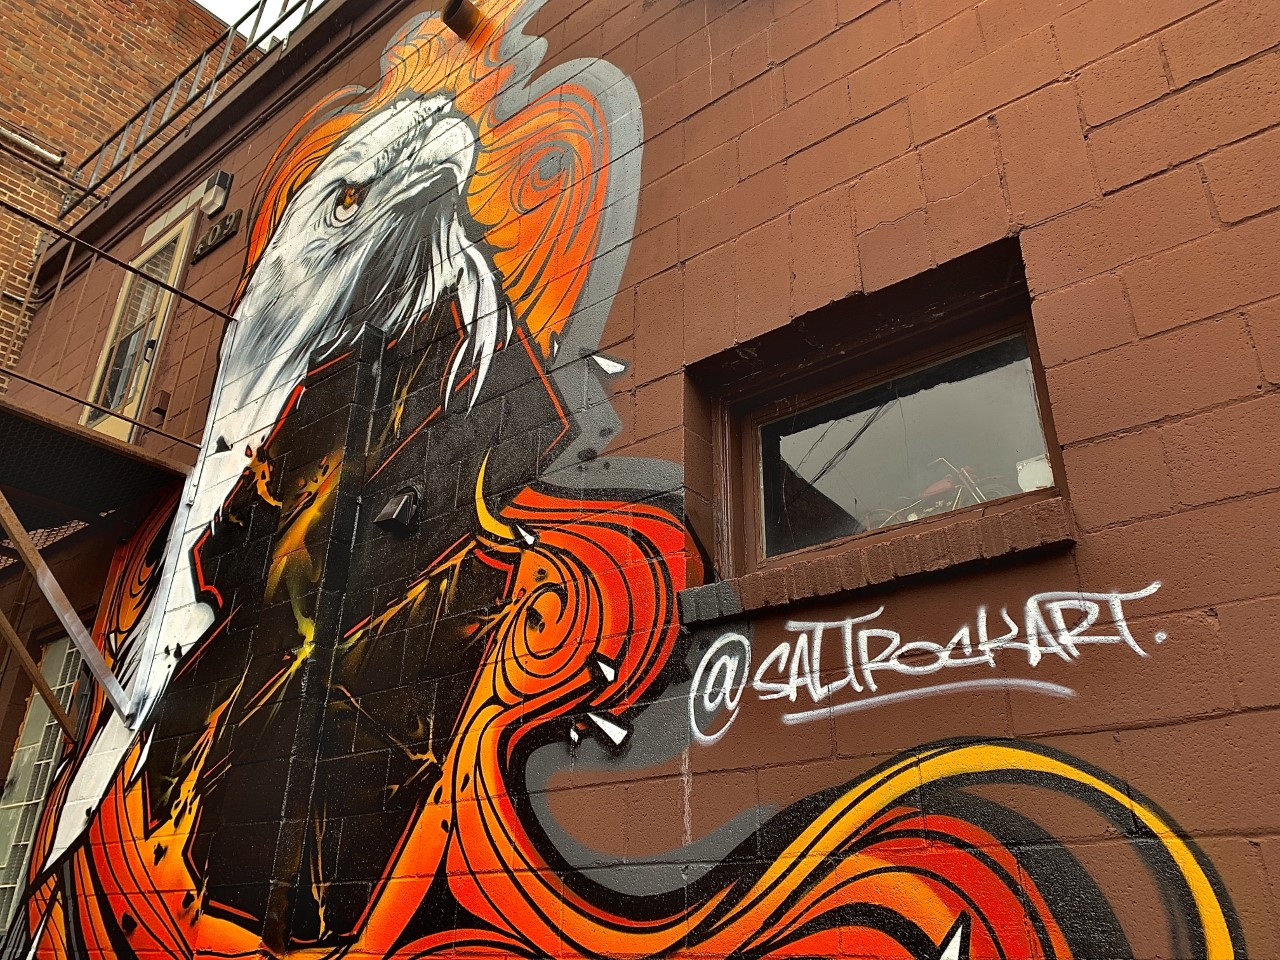 New mural from Wisconsin artist spotted in Eau Claire